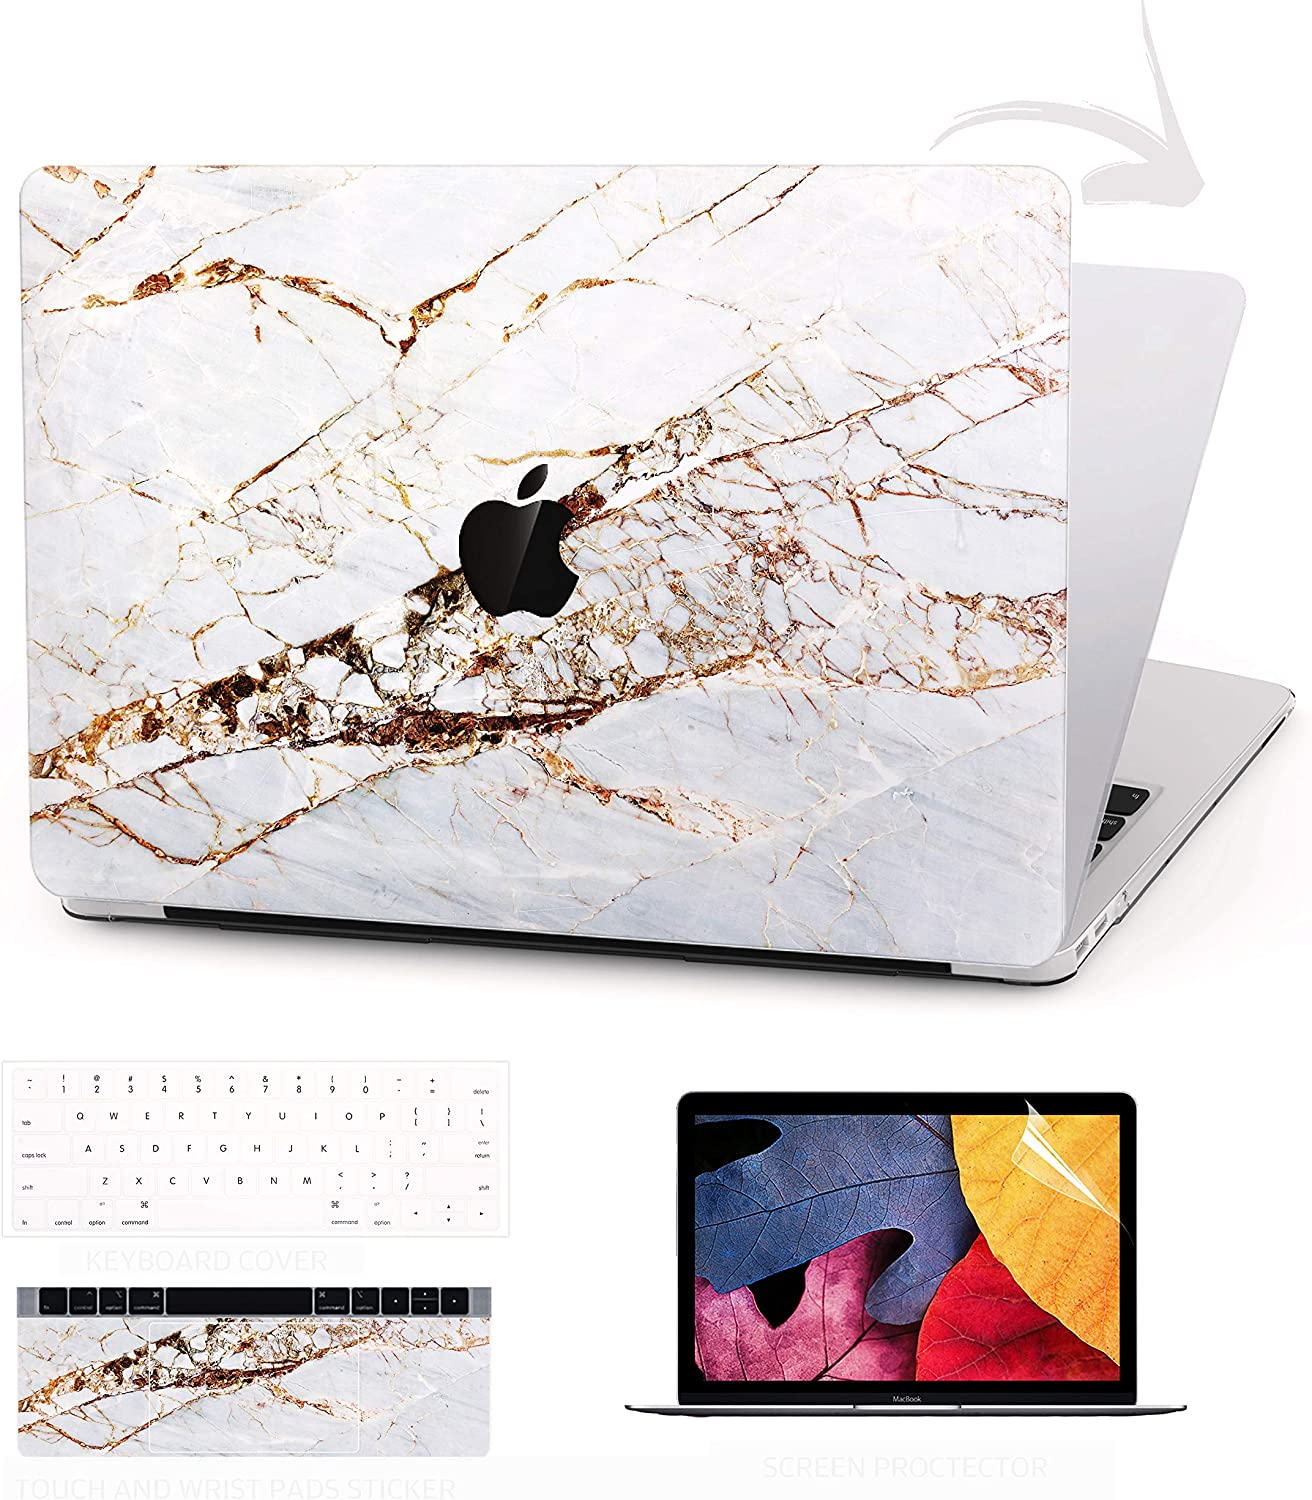 TIMOCY Laptop Case for MacBook Pro 13 Keyboard Cover Plastic Hard Shell Touch Bar 4 in 1 Bundle with Screen Protector for Mac Pro 13 Inch (Model:A1706/A1708/A1989),Abstract Slash Marble